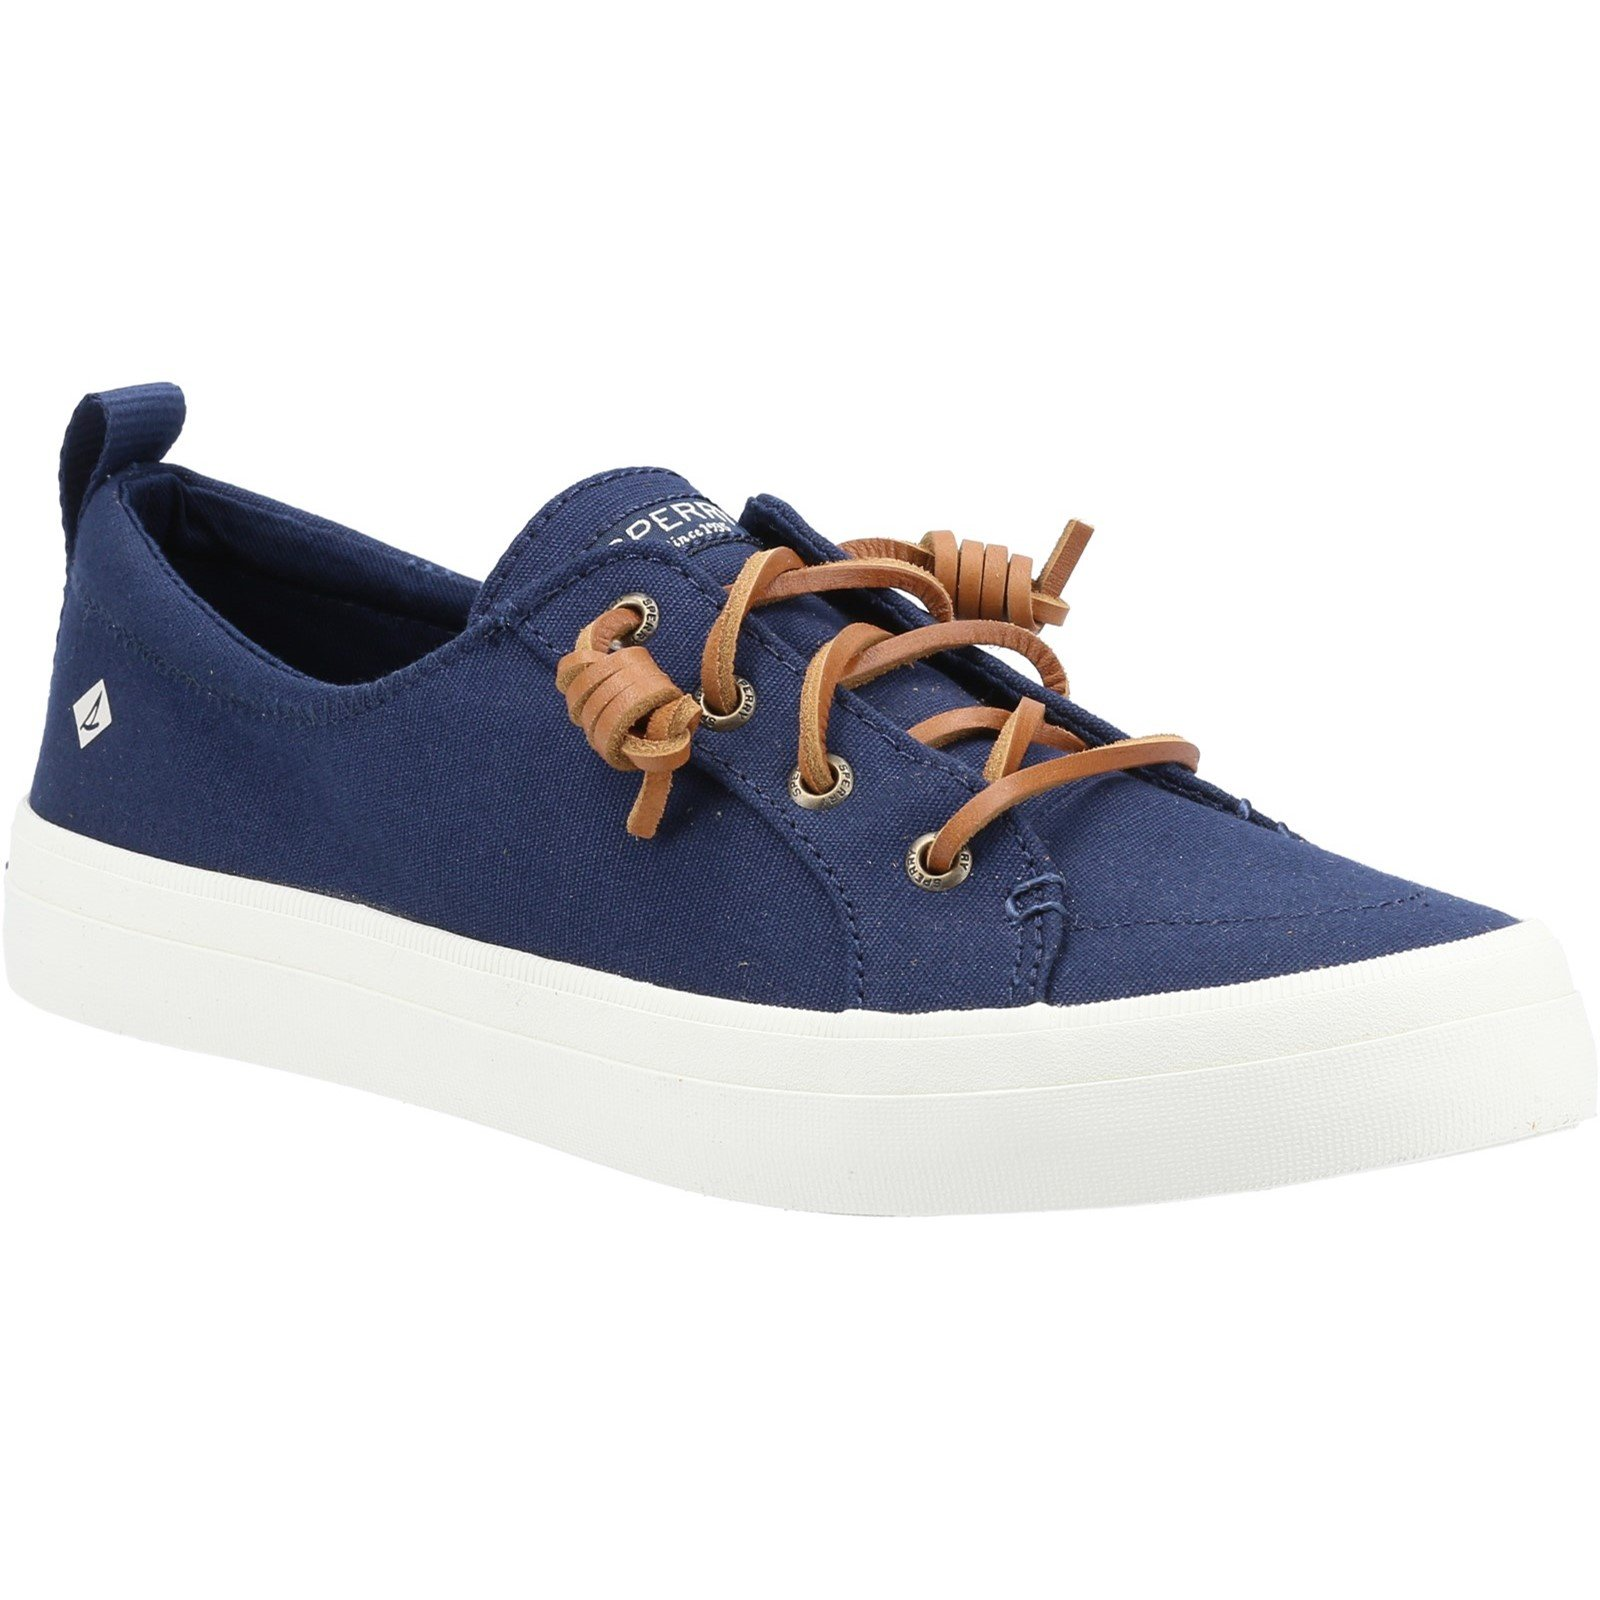 Sperry Women's Crest Vibe Canvas Lace Trainers Various Colours 32937 - Navy 5